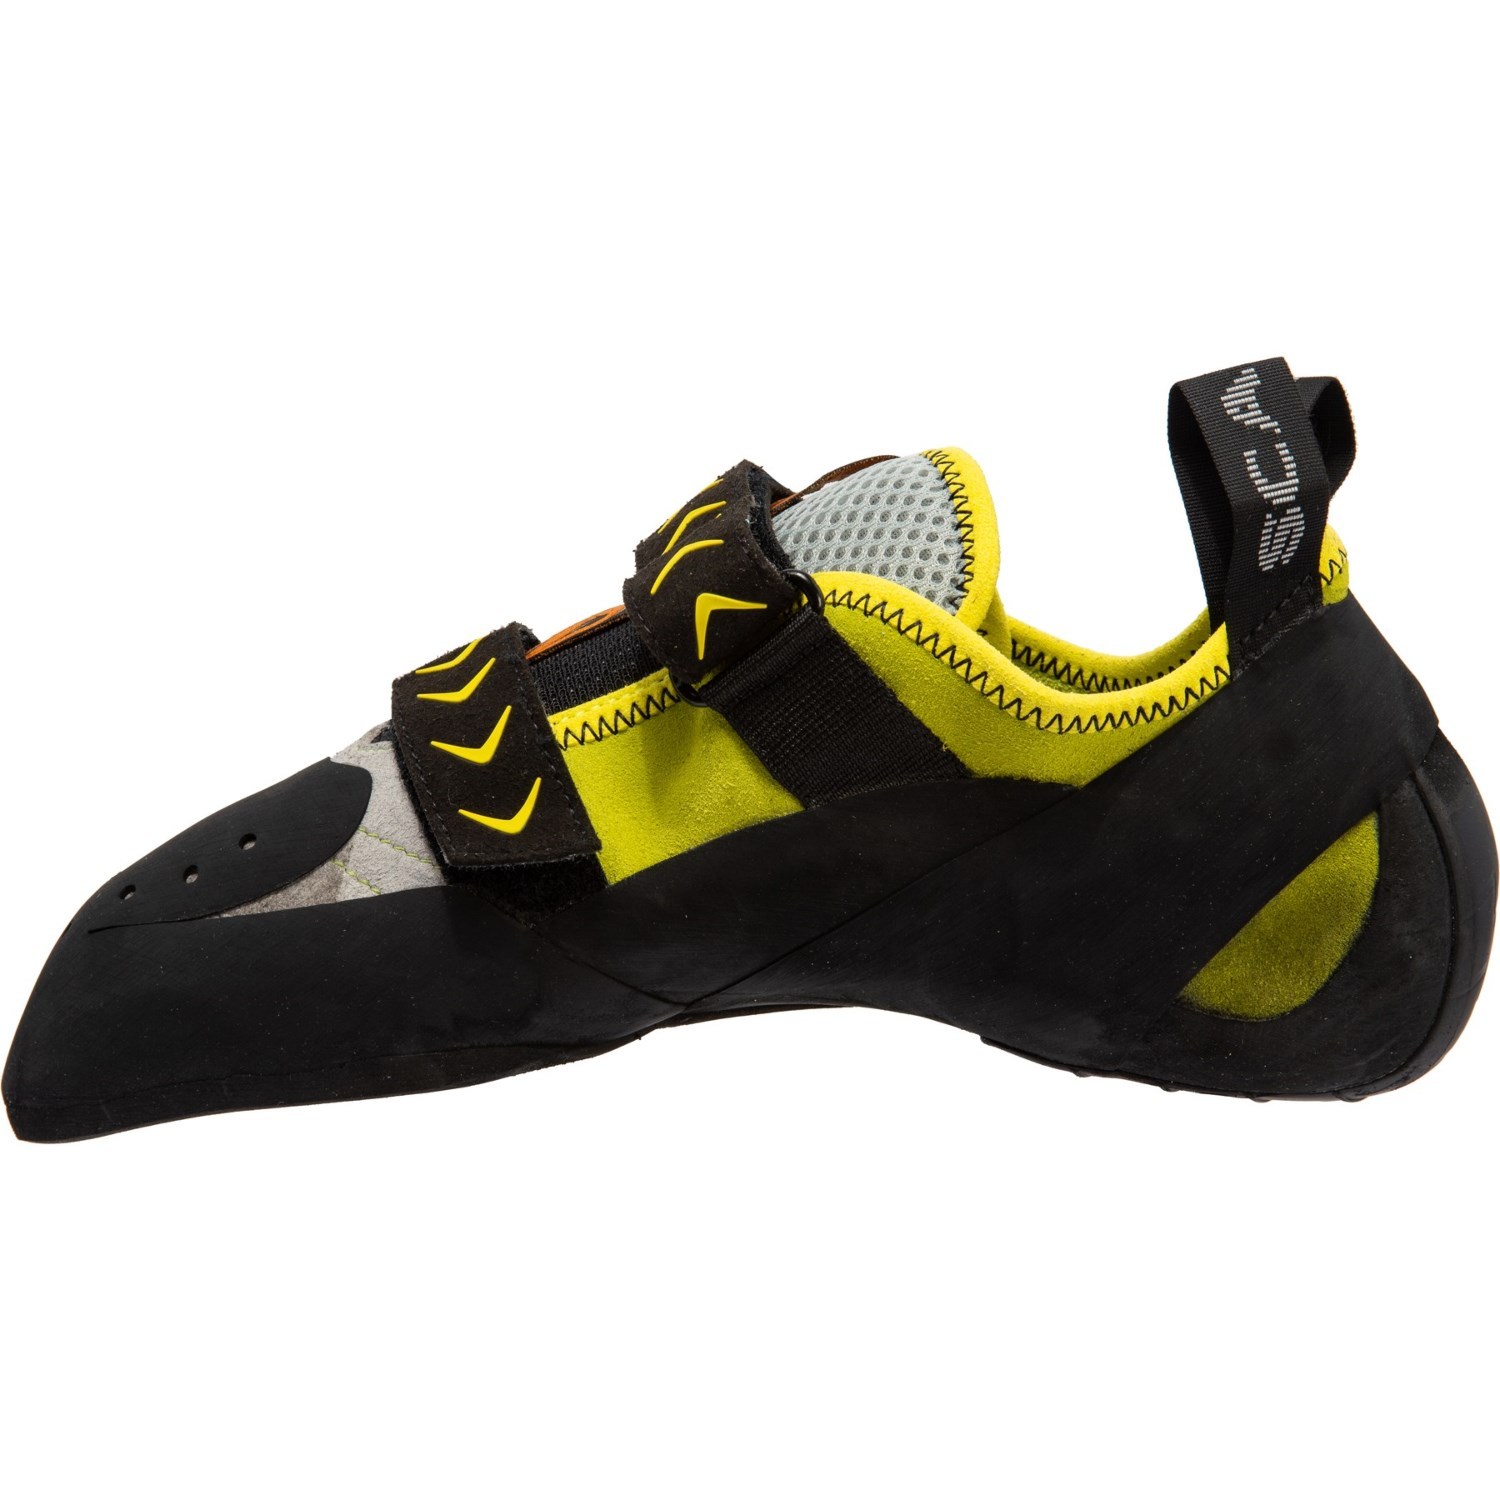 competitive price 4895f 556f0 Scarpa Made in Italy Vapor V Climbing Shoes (For Men)